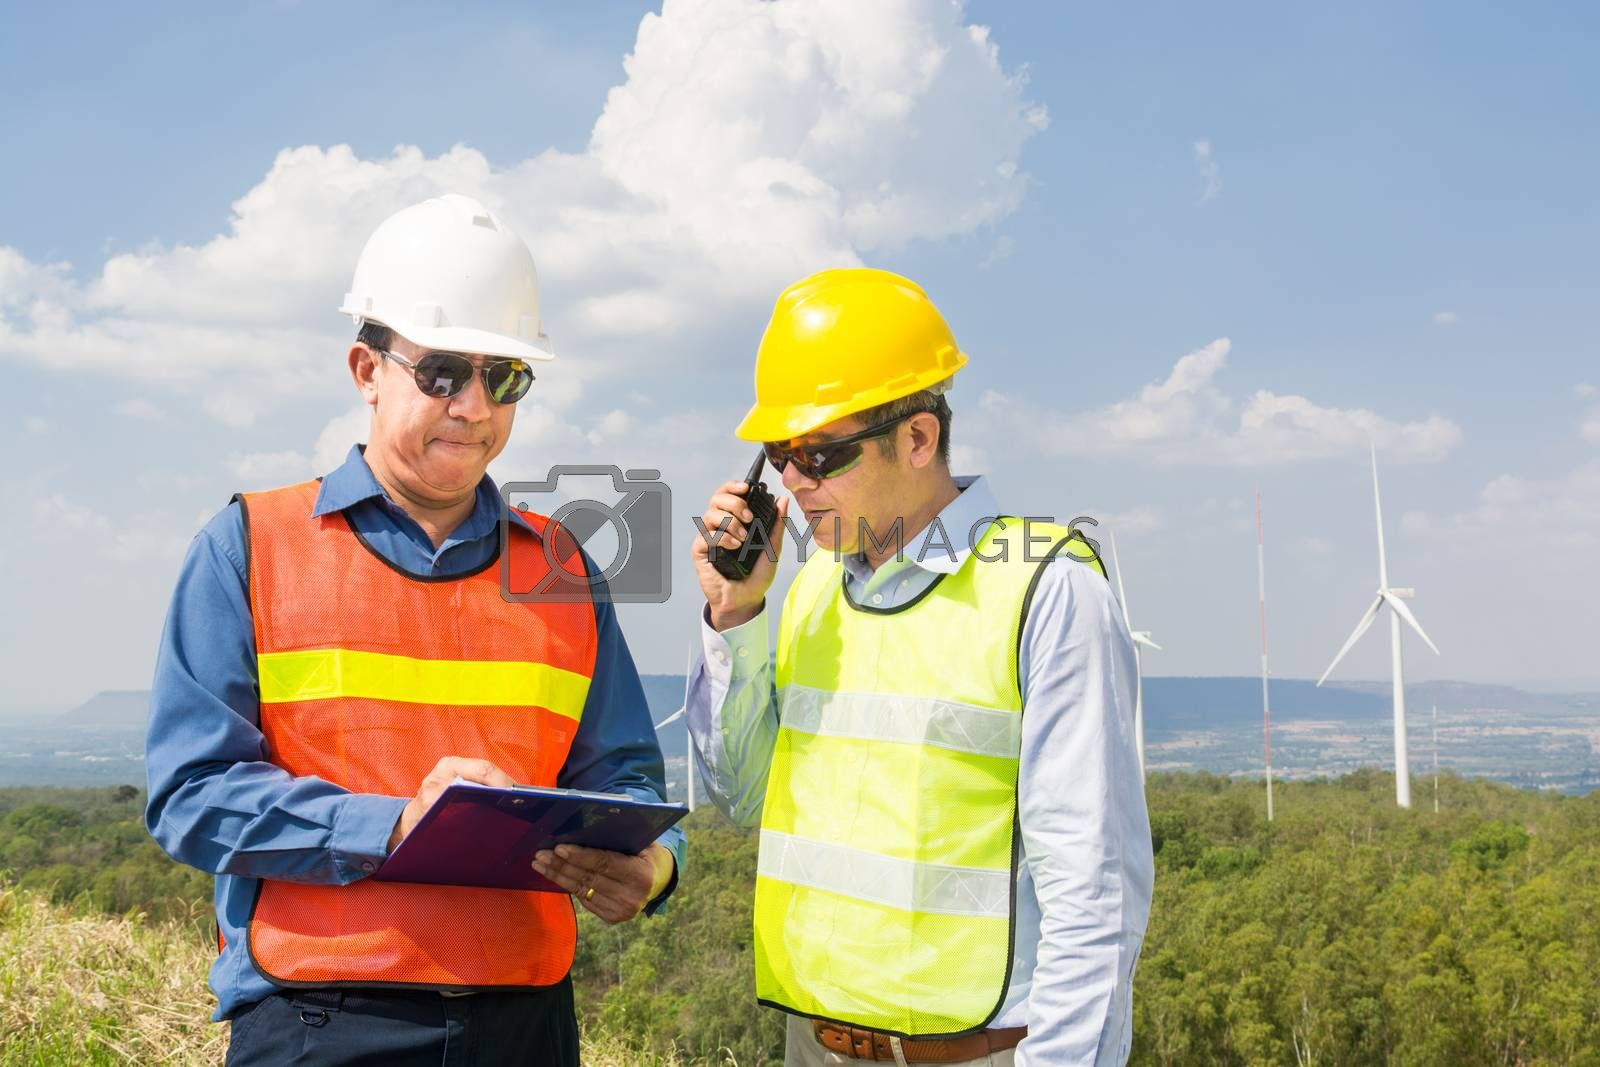 Male Engineer and Architect working Together with Hand-Held Transceiver Radio and Clipboard at Wind Turbine Power Generator Field as infrastructure construction Project Development Teamwork